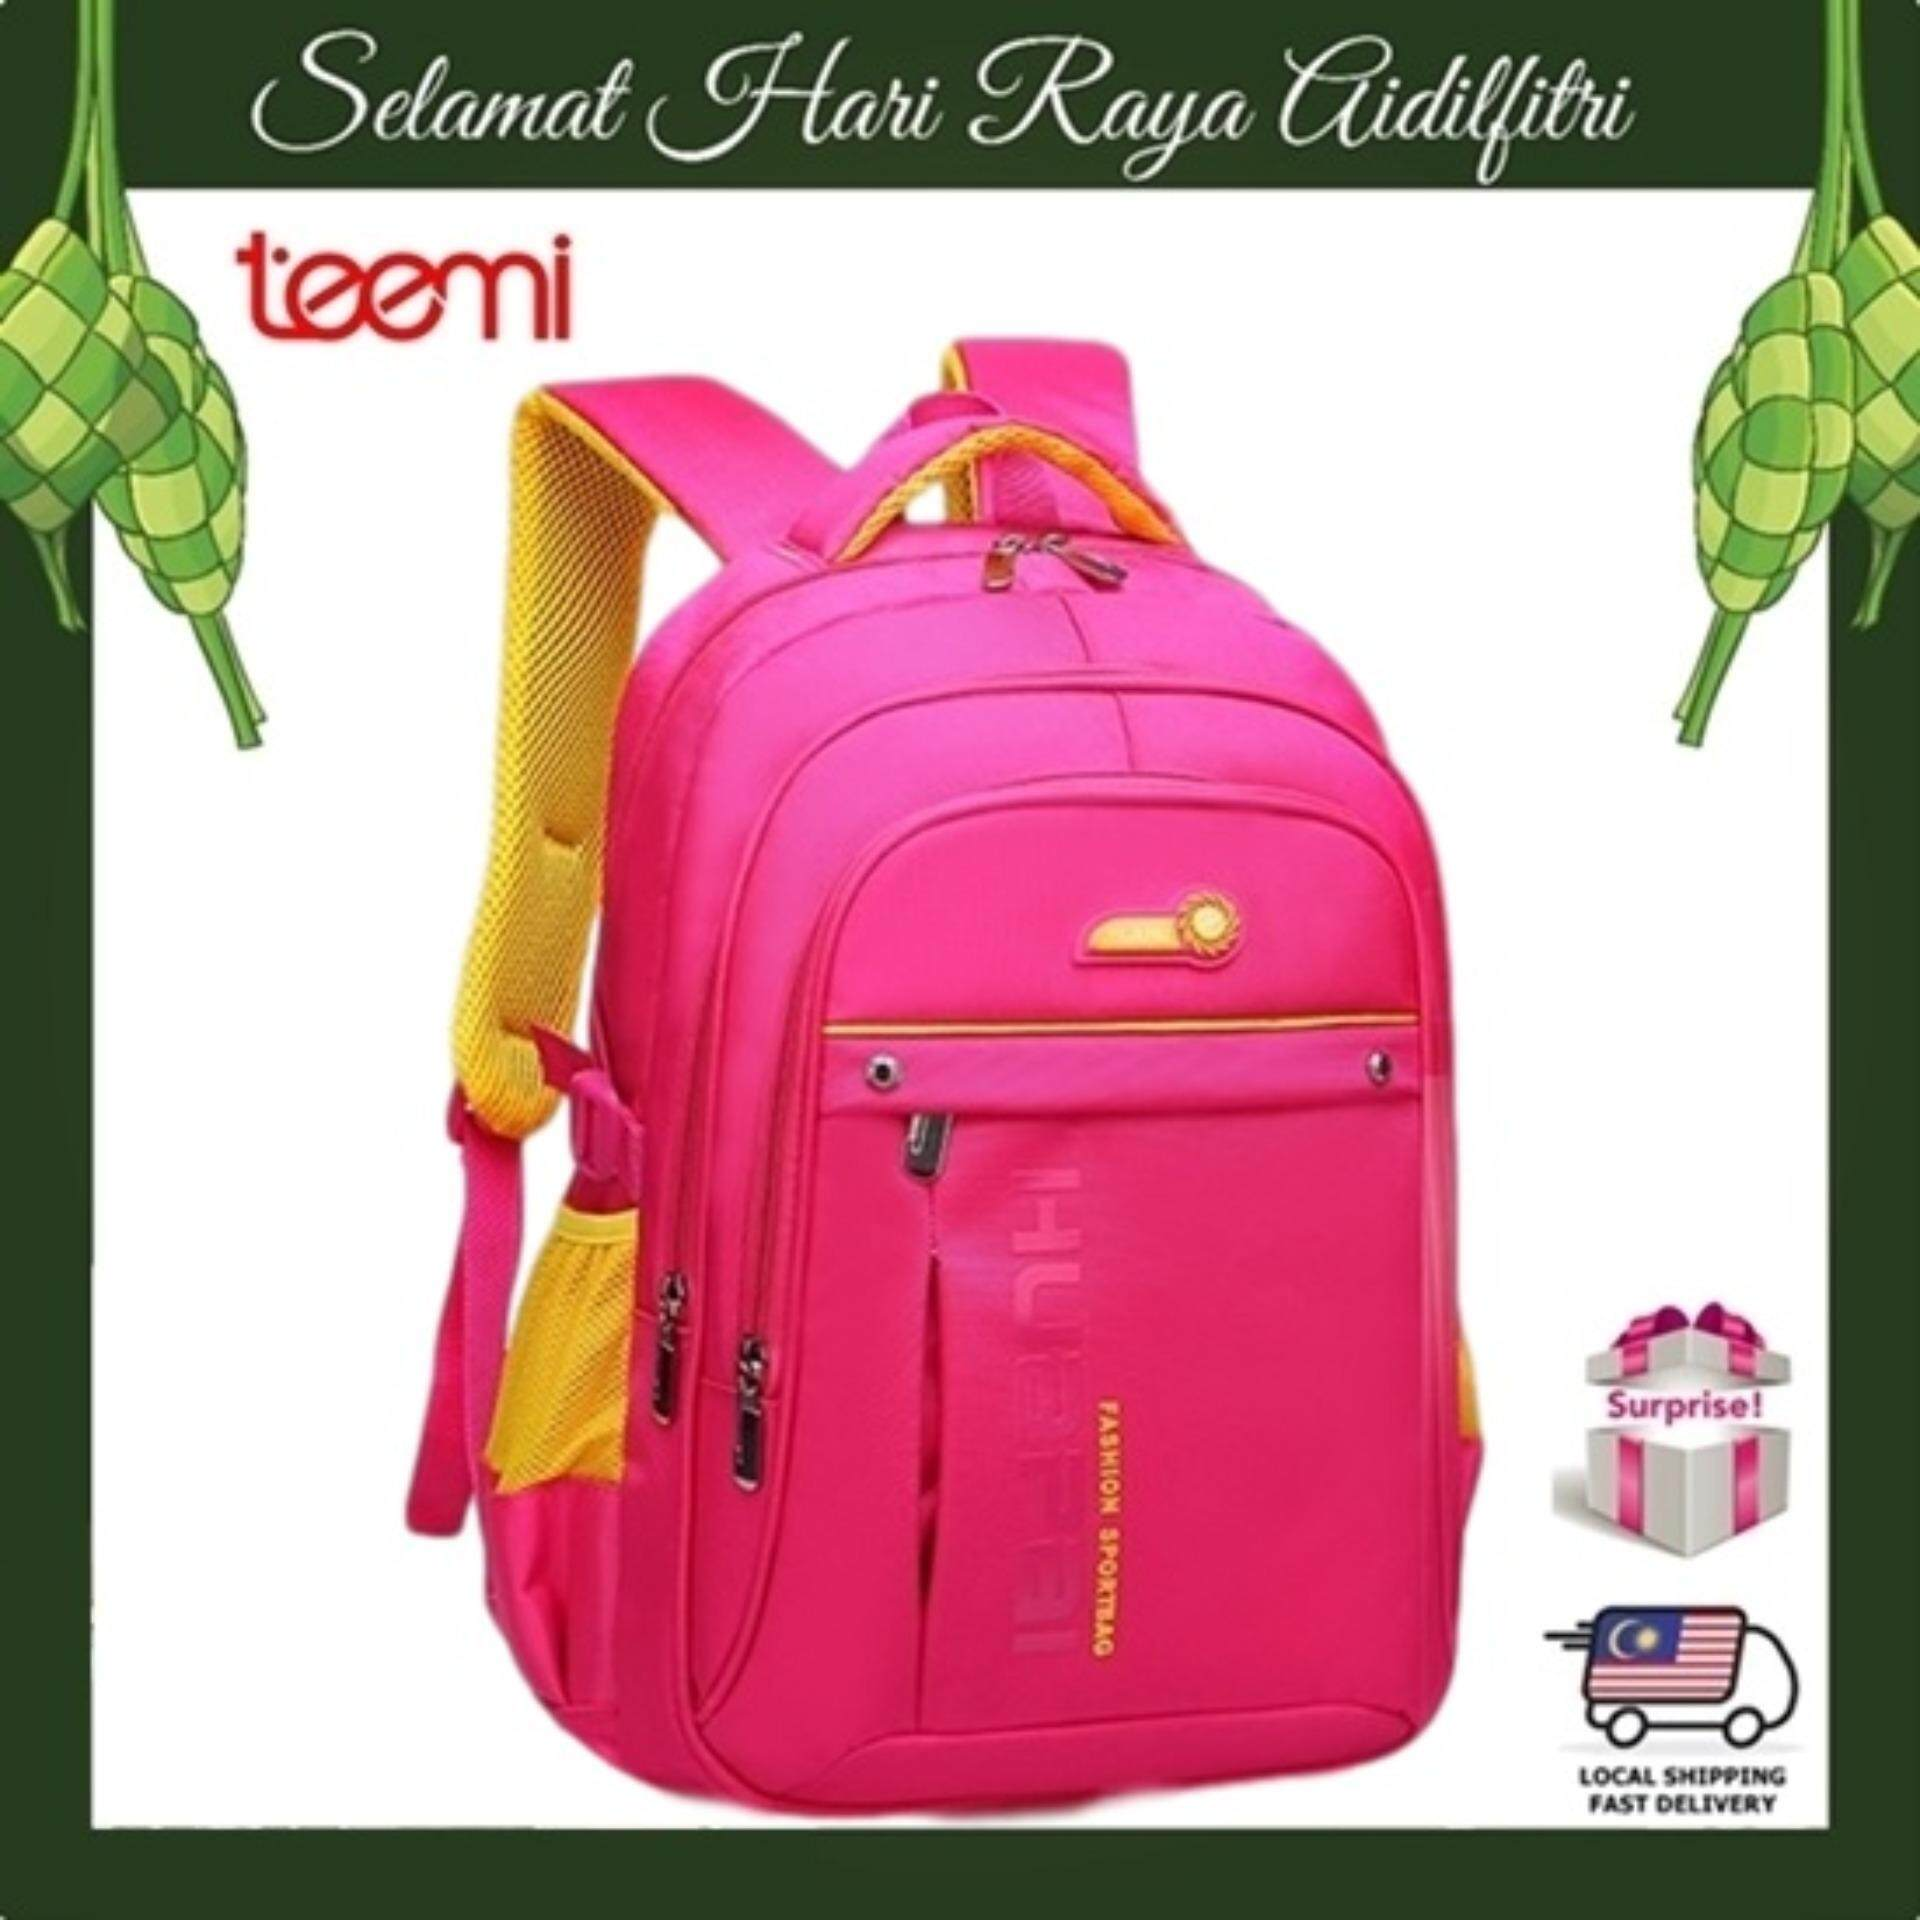 【TEEMI】Two Tone Bright Color Primary Secondary Nylon Water Resistant Orthopedic School Bag Kids Children Backpack - Pink